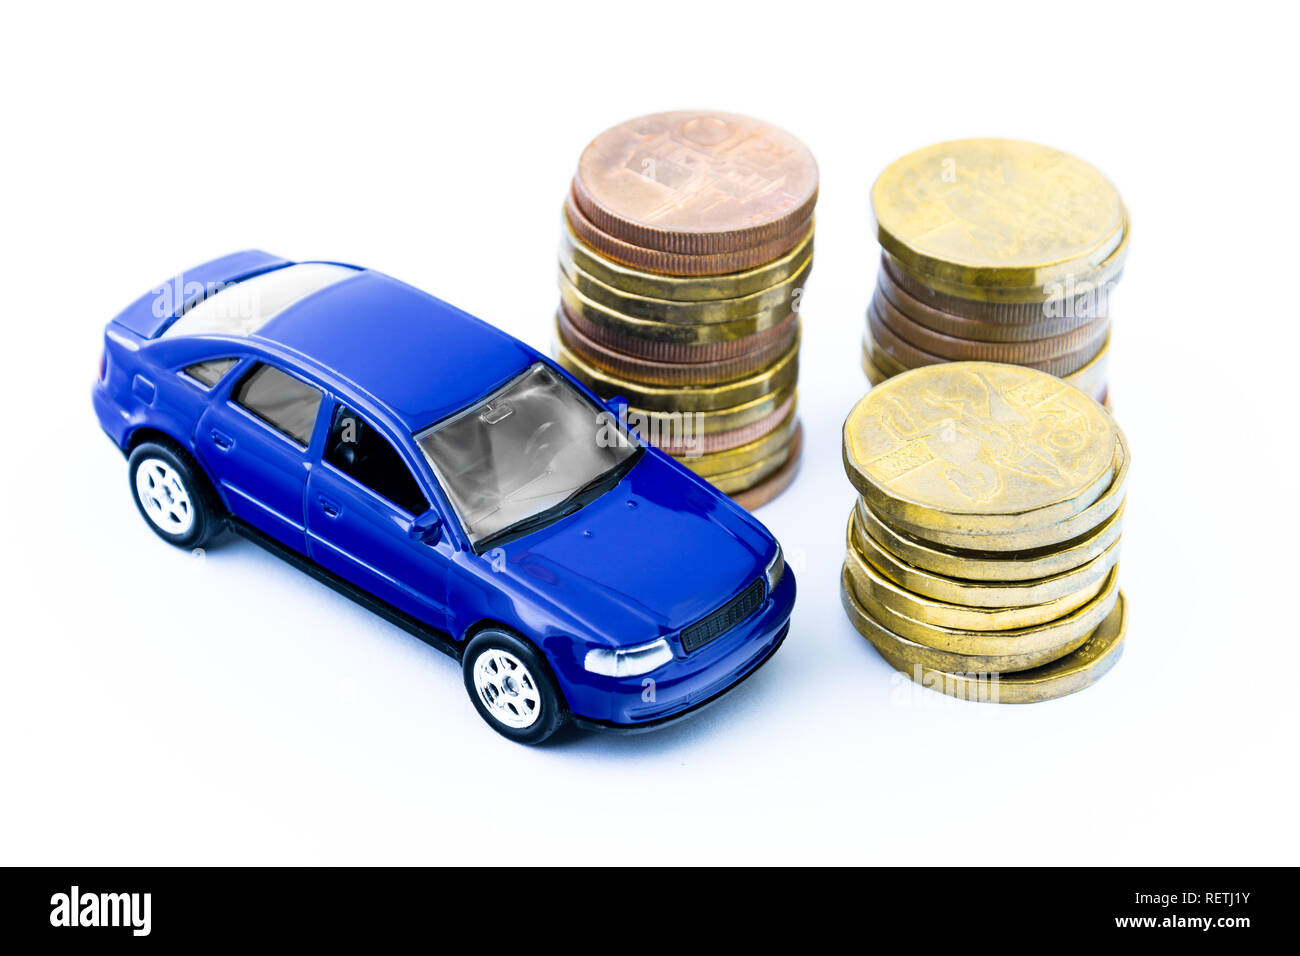 Model of blue car and coins on a white background. Isolated toy car and money. Financial concept. Buy a new or old car. - Stock Image